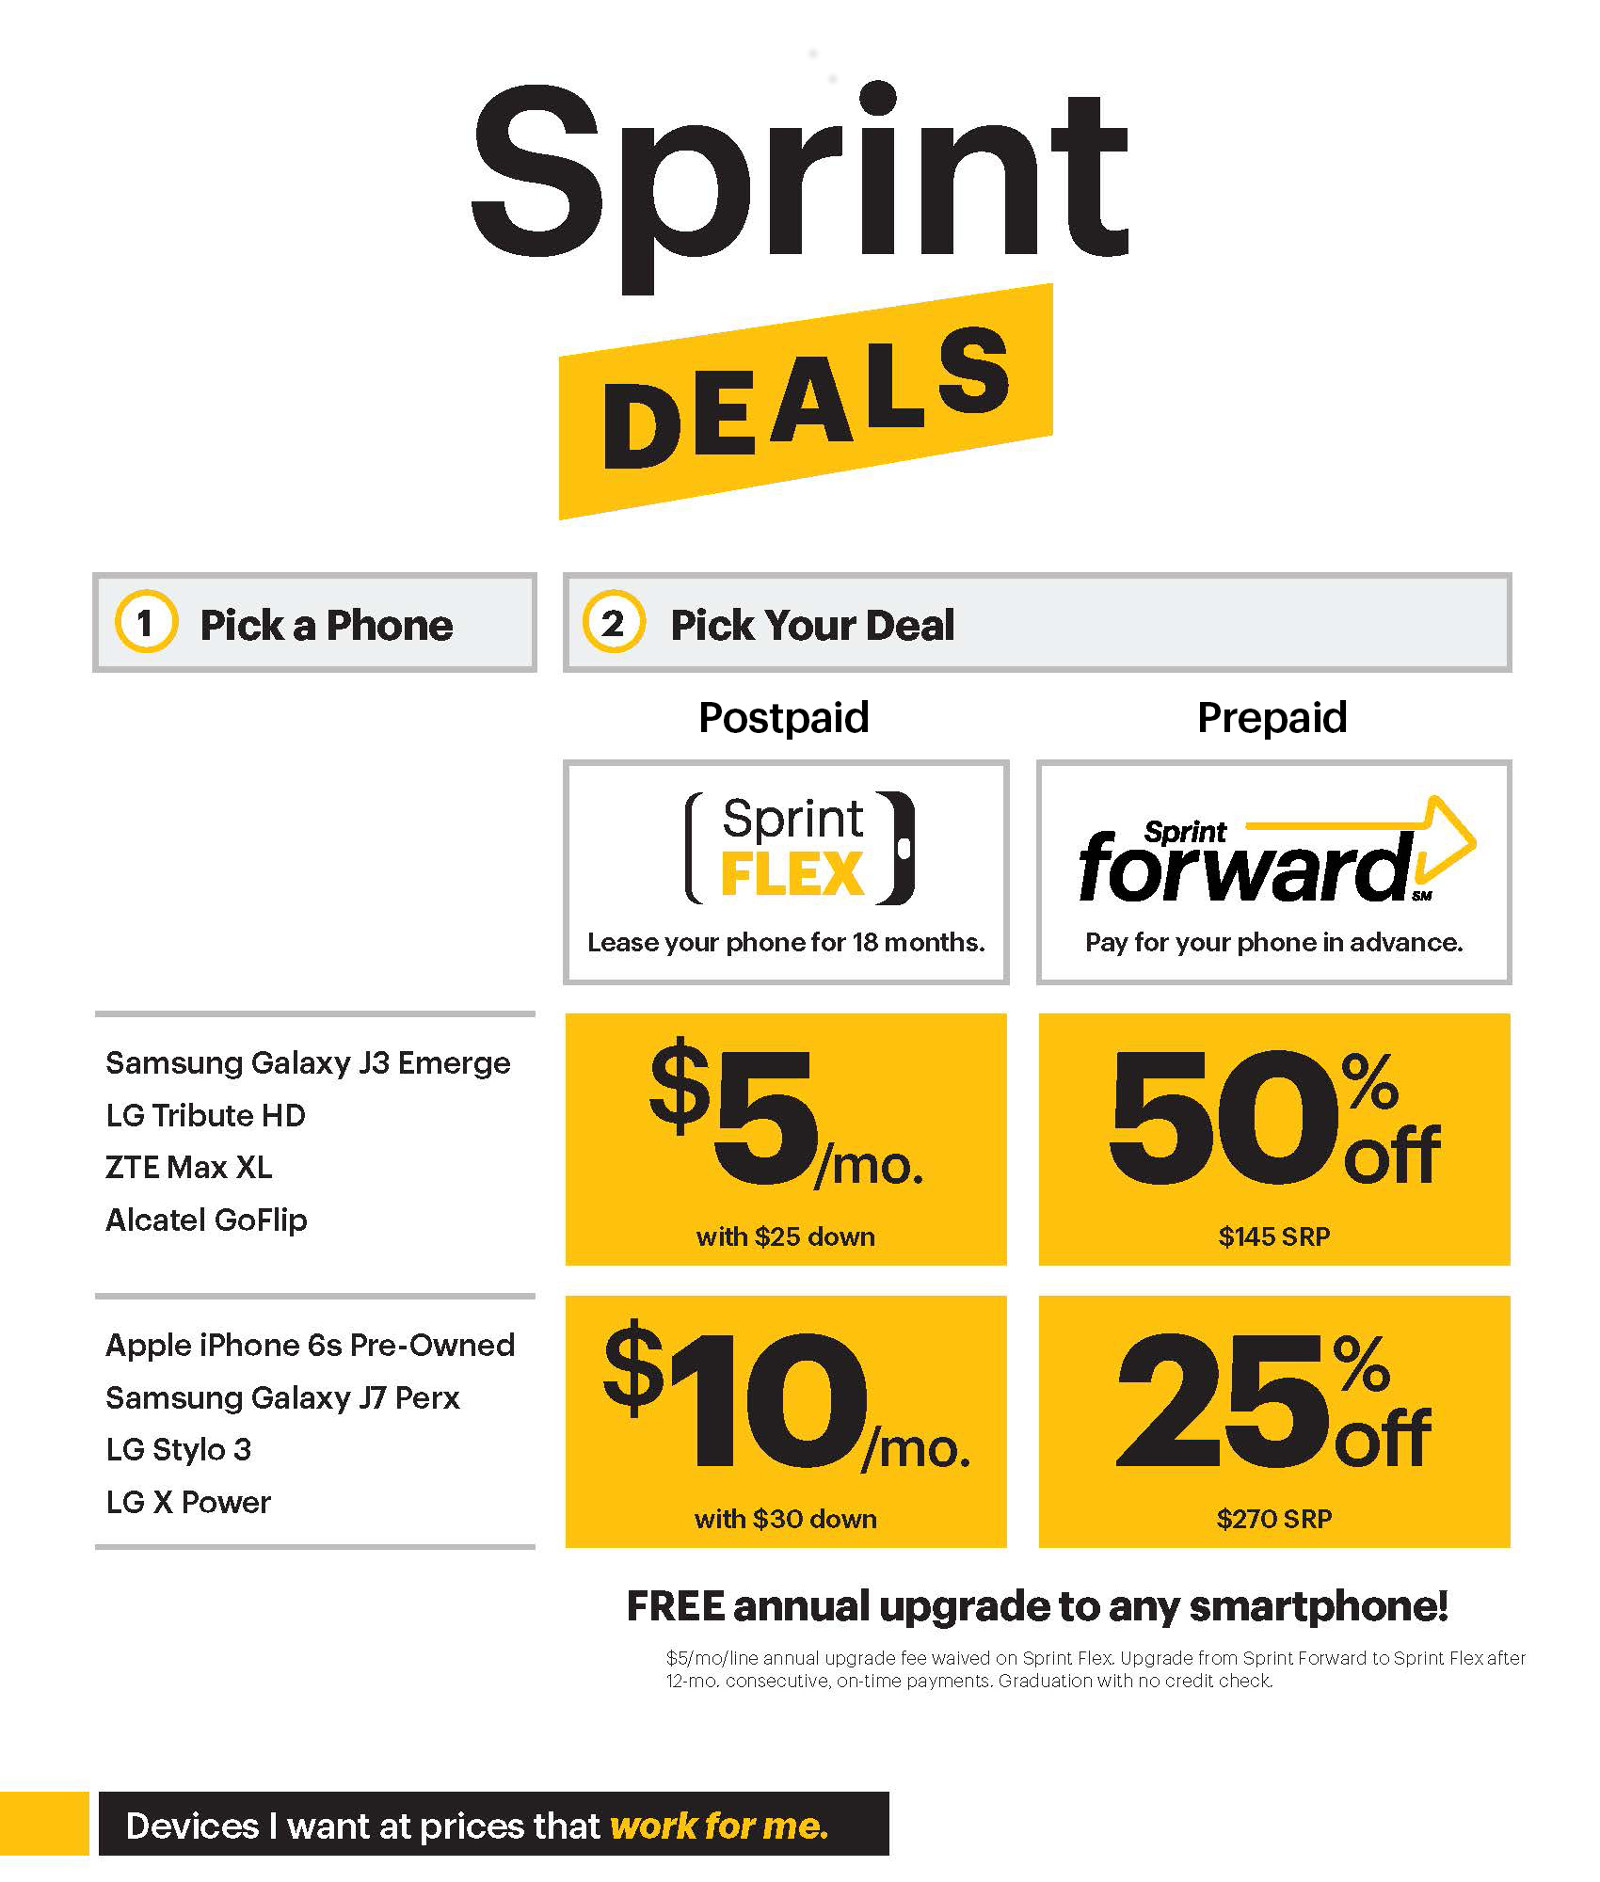 Sprint hopes smartphone leases will woo new subscribers